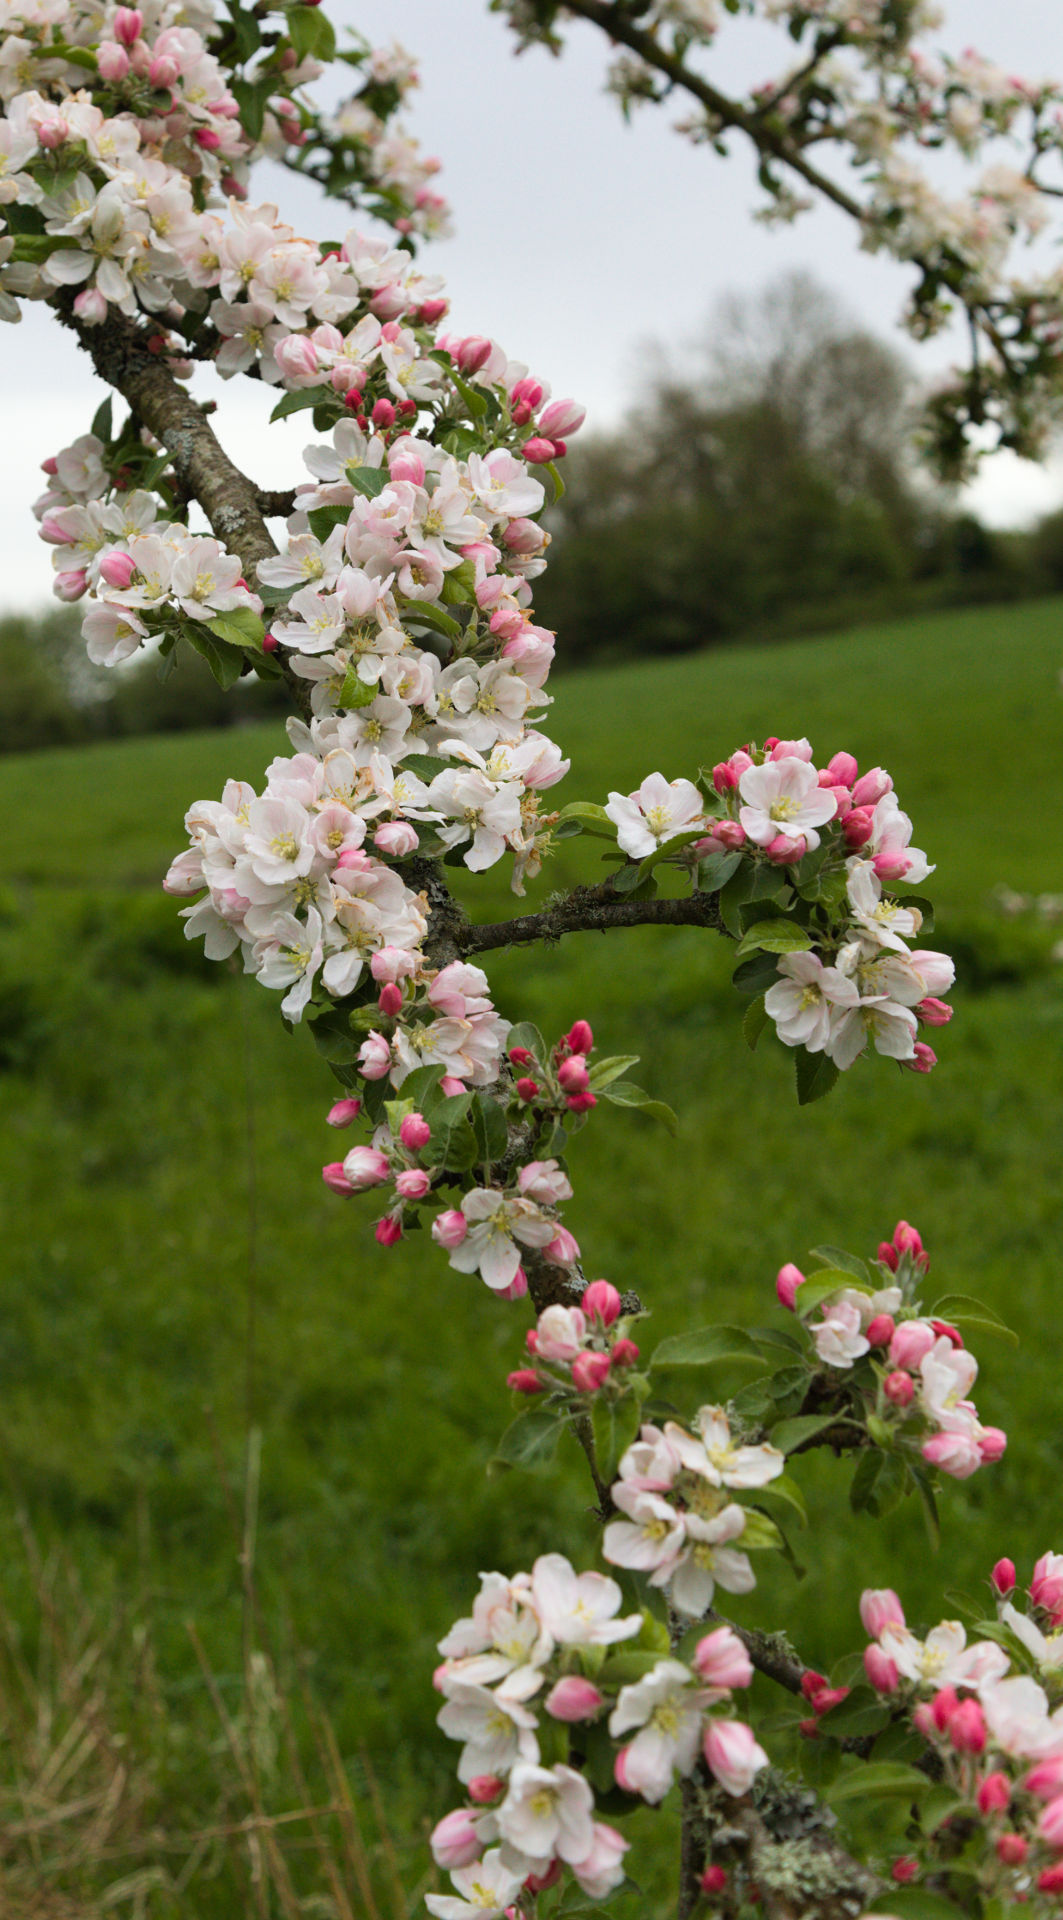 Tom Putt flowering branch in cowbridge south wales